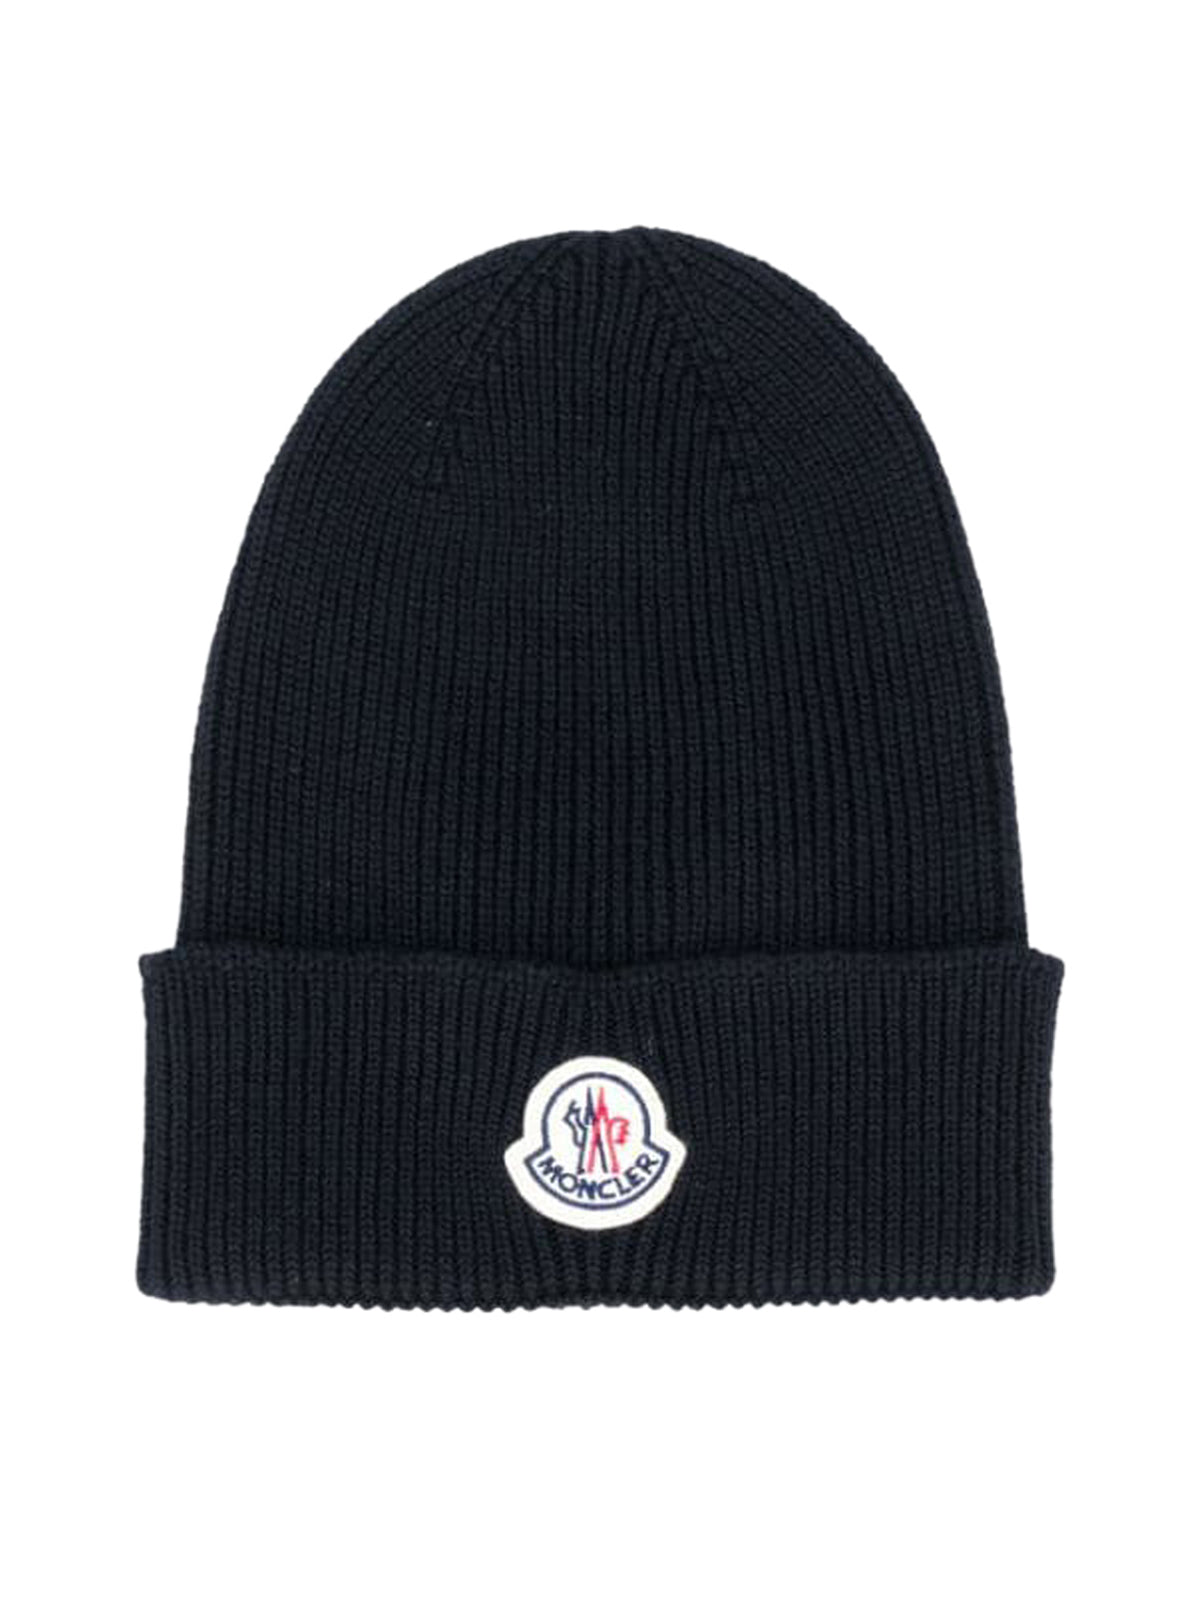 ribbed knit logo patch hat